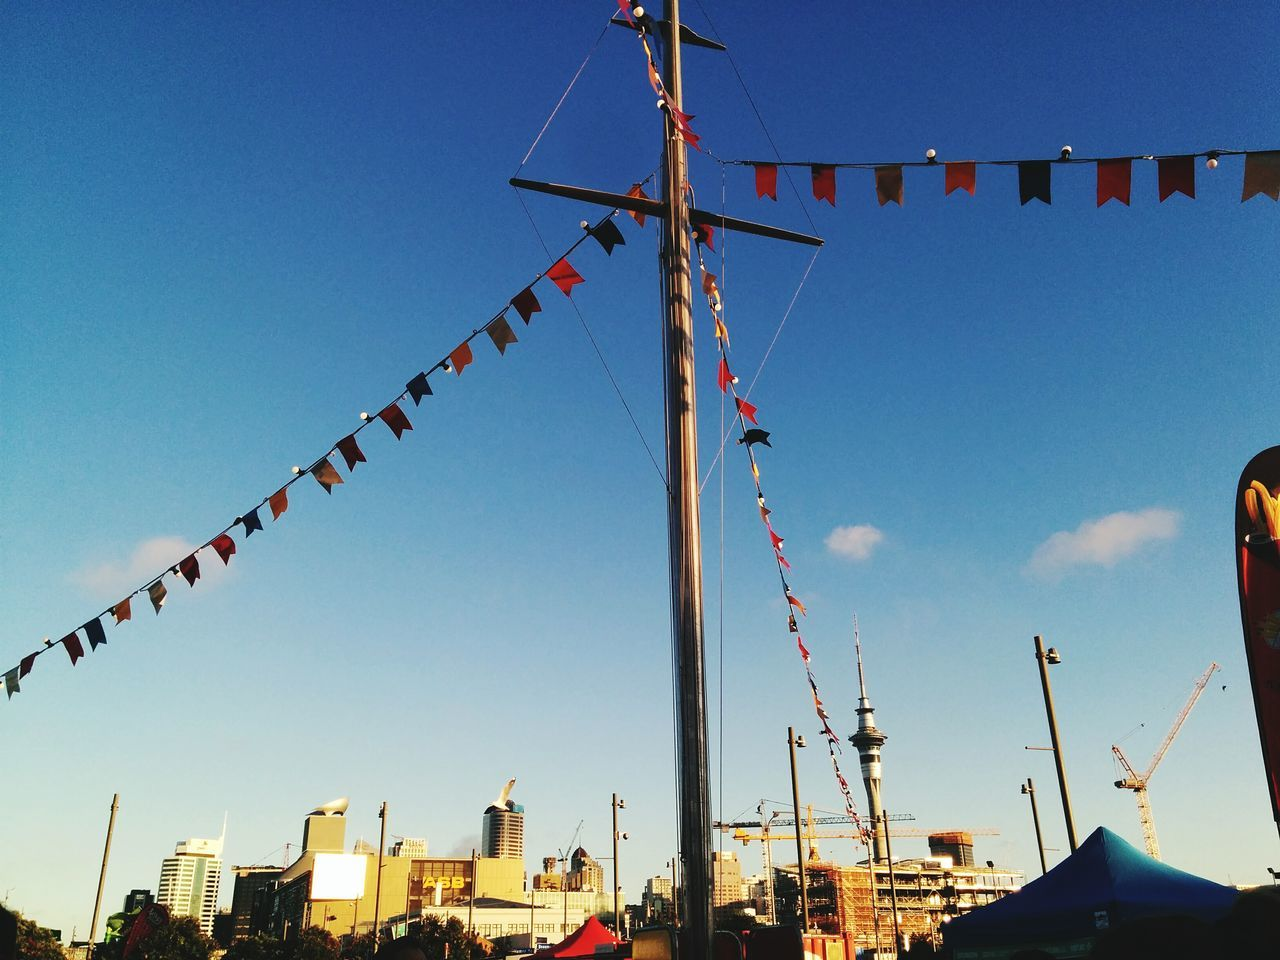 Low Angle View Of Buntings Hanging On Pole Against Sky